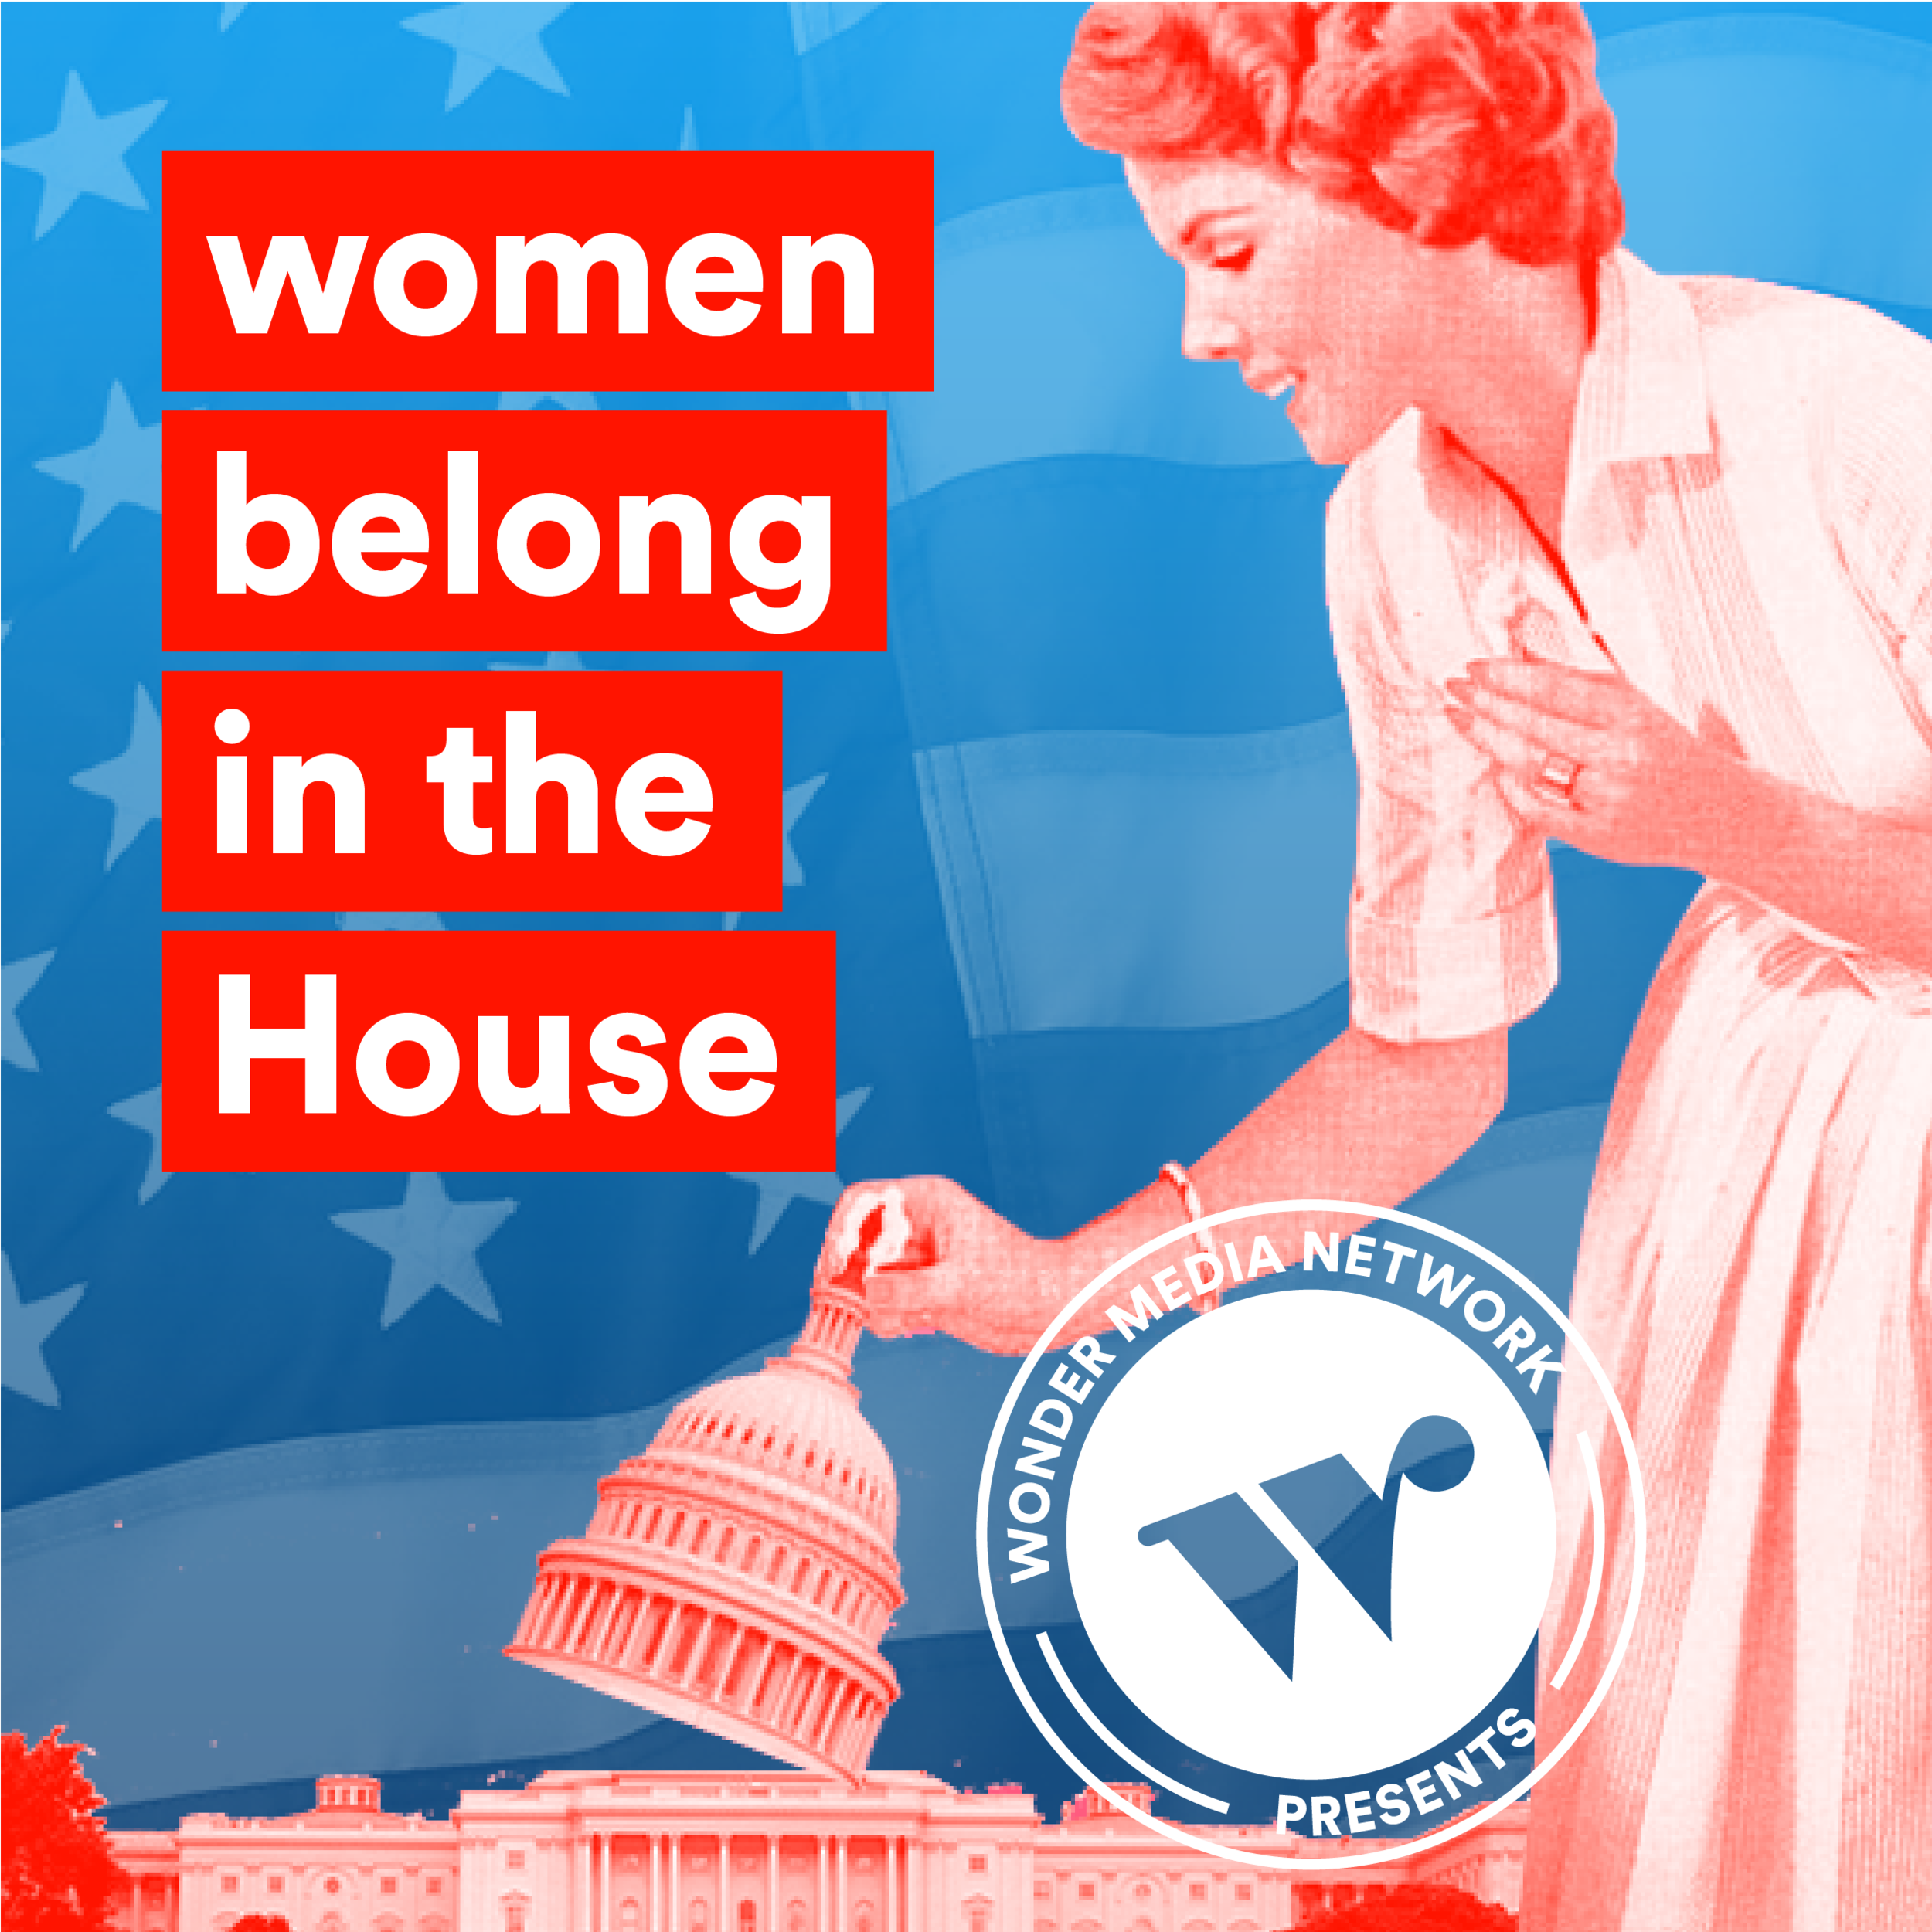 women-belong-in-the-house-artwork-selected-red-2.png